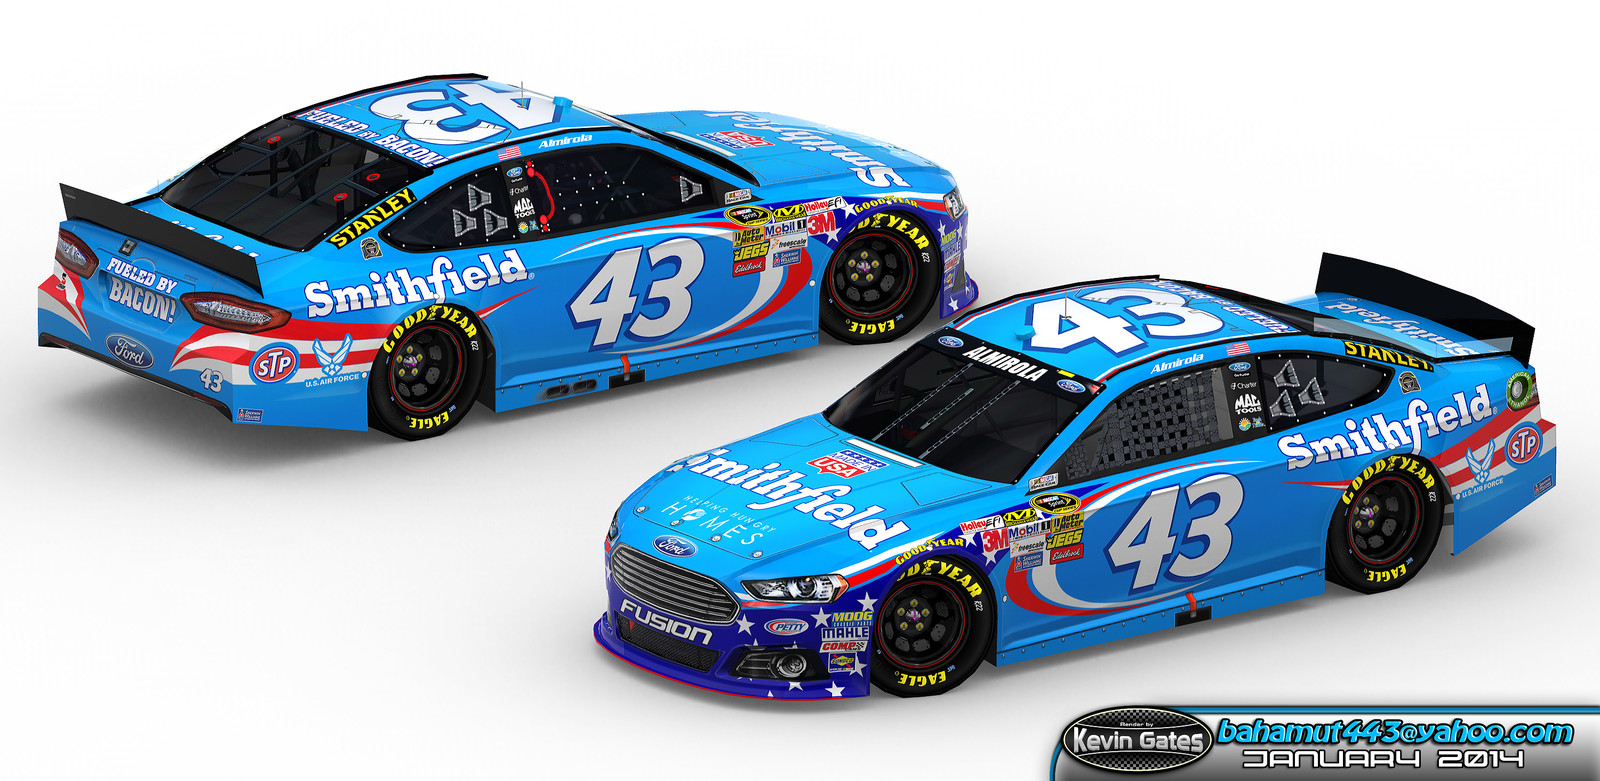 Original Autodesk 3DS Max render of the finalized 2014 'Made in USA' #43 Smithfield Ford Fusion driven by NASCAR Sprint Cup Series driver Aric Almirola of Richard Petty Motorsports